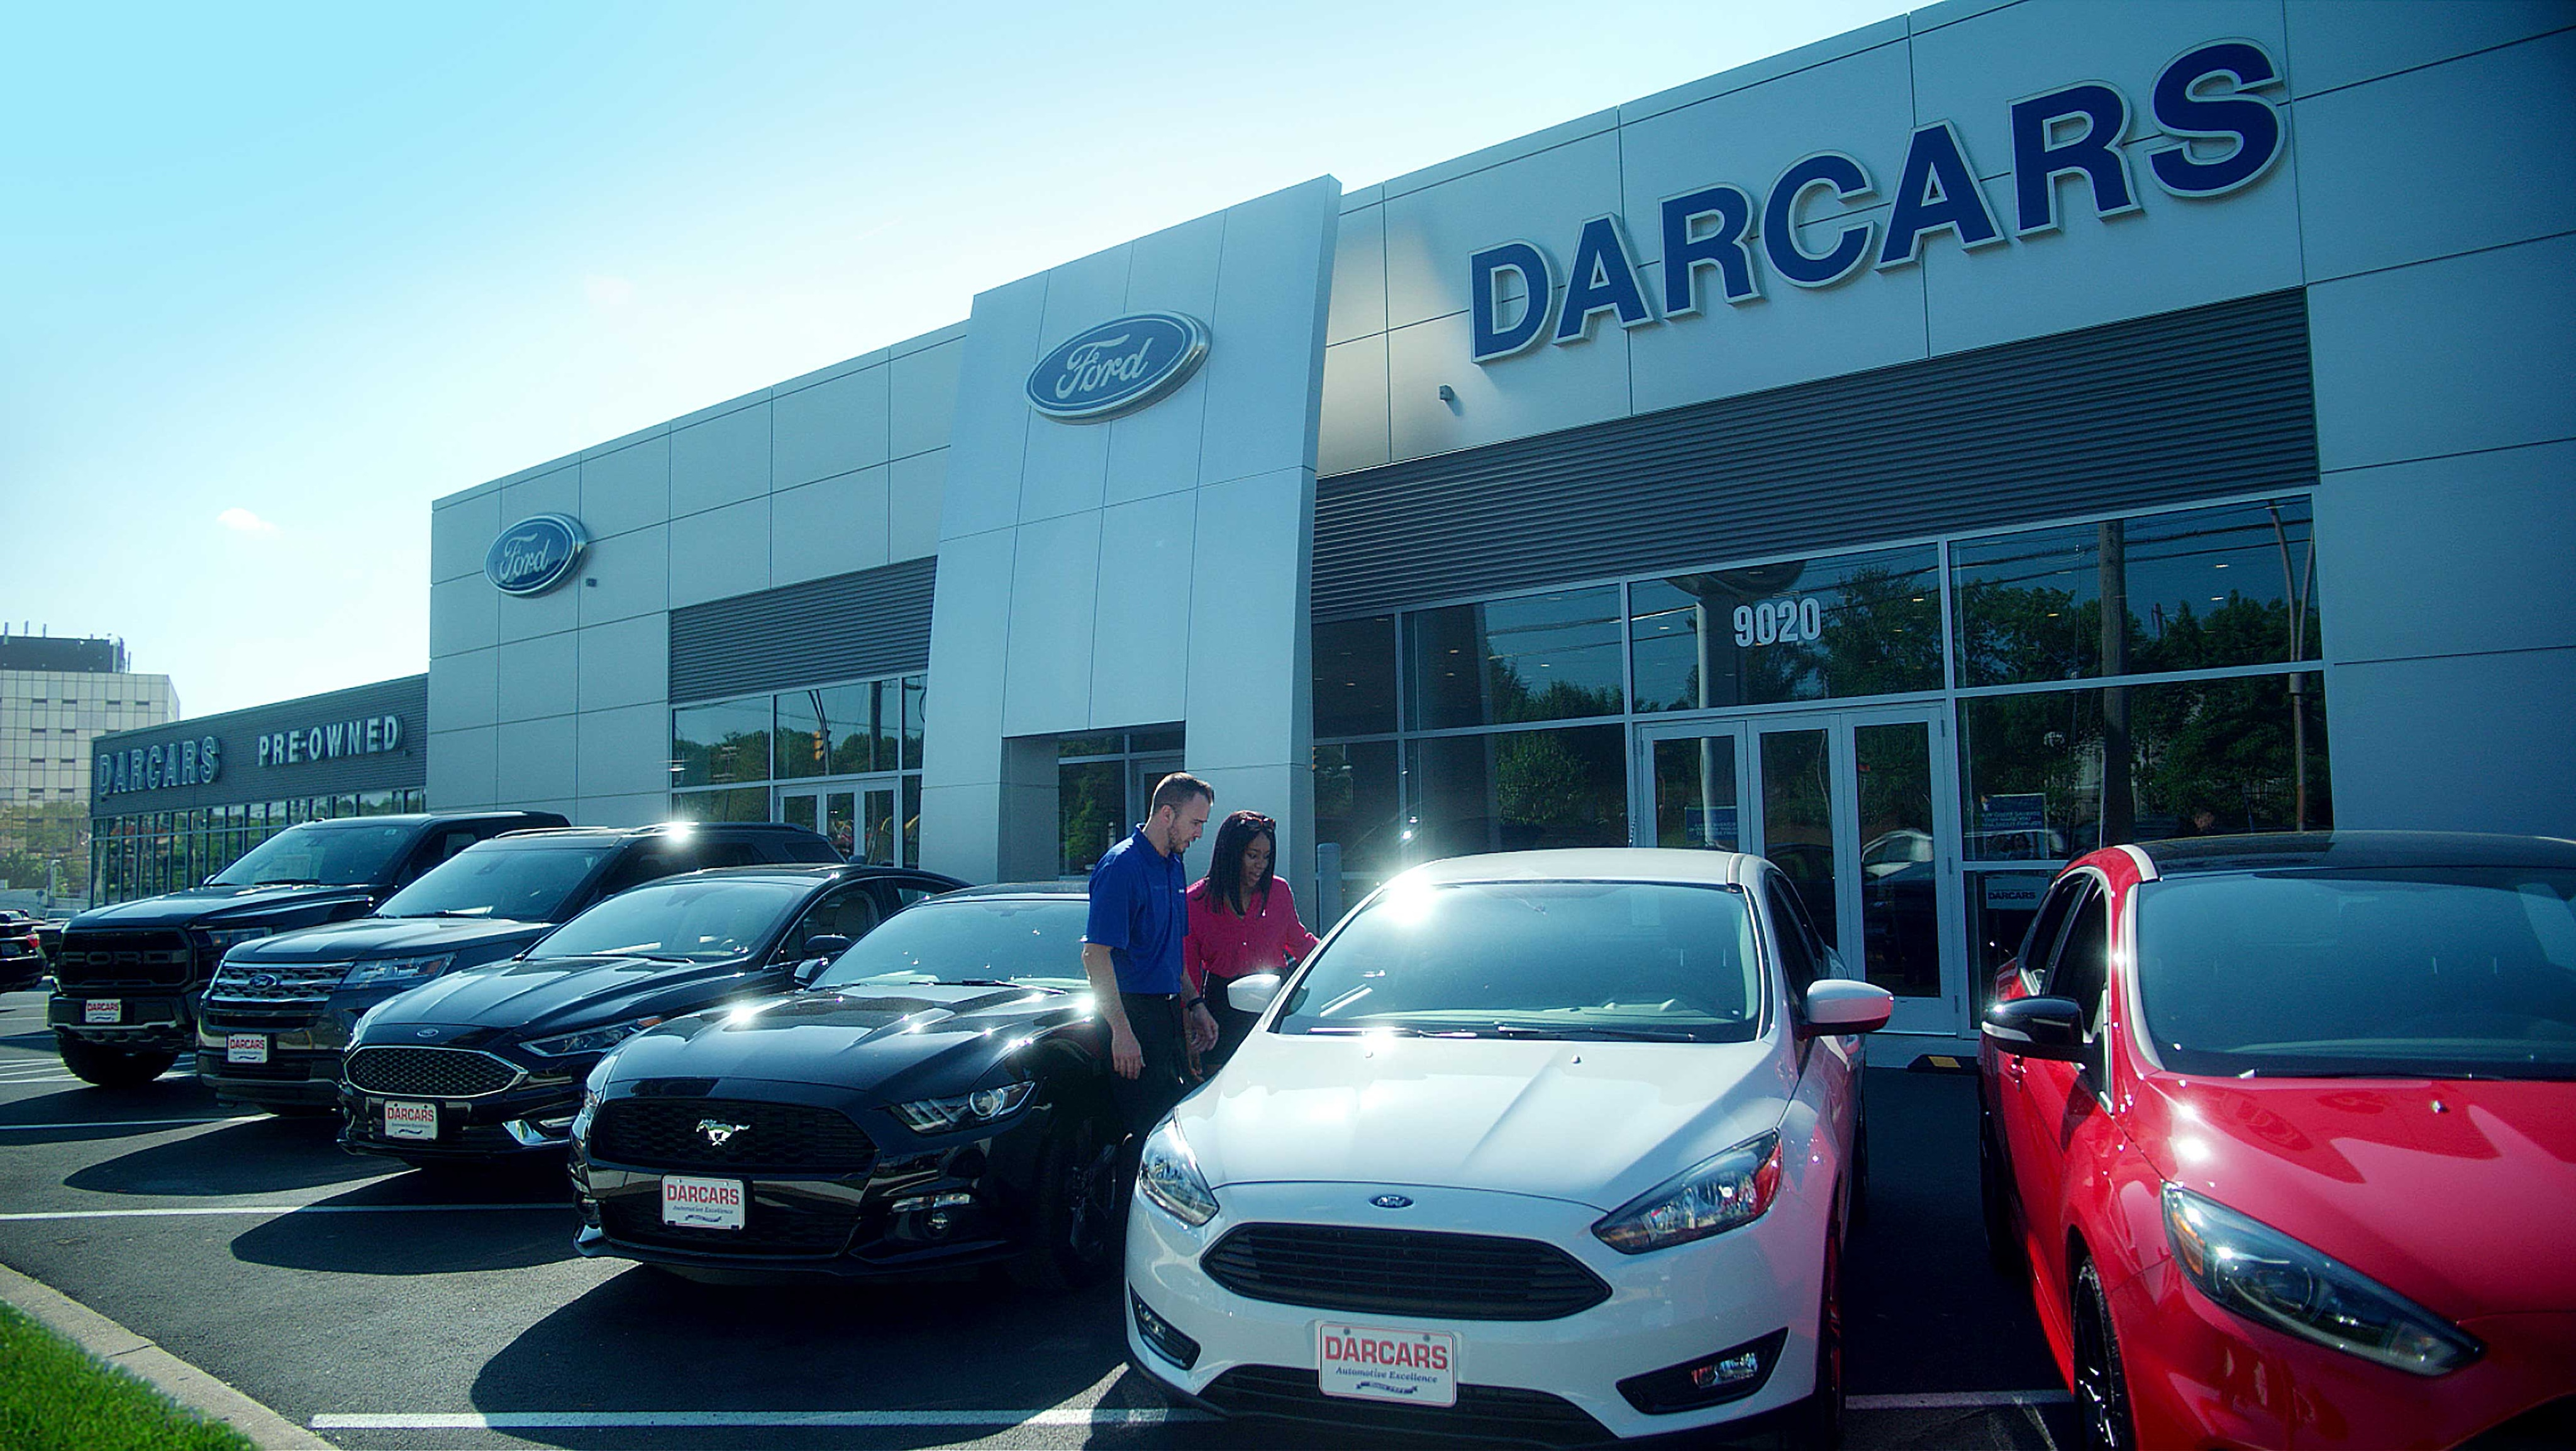 DARCARS Ford of Lanham